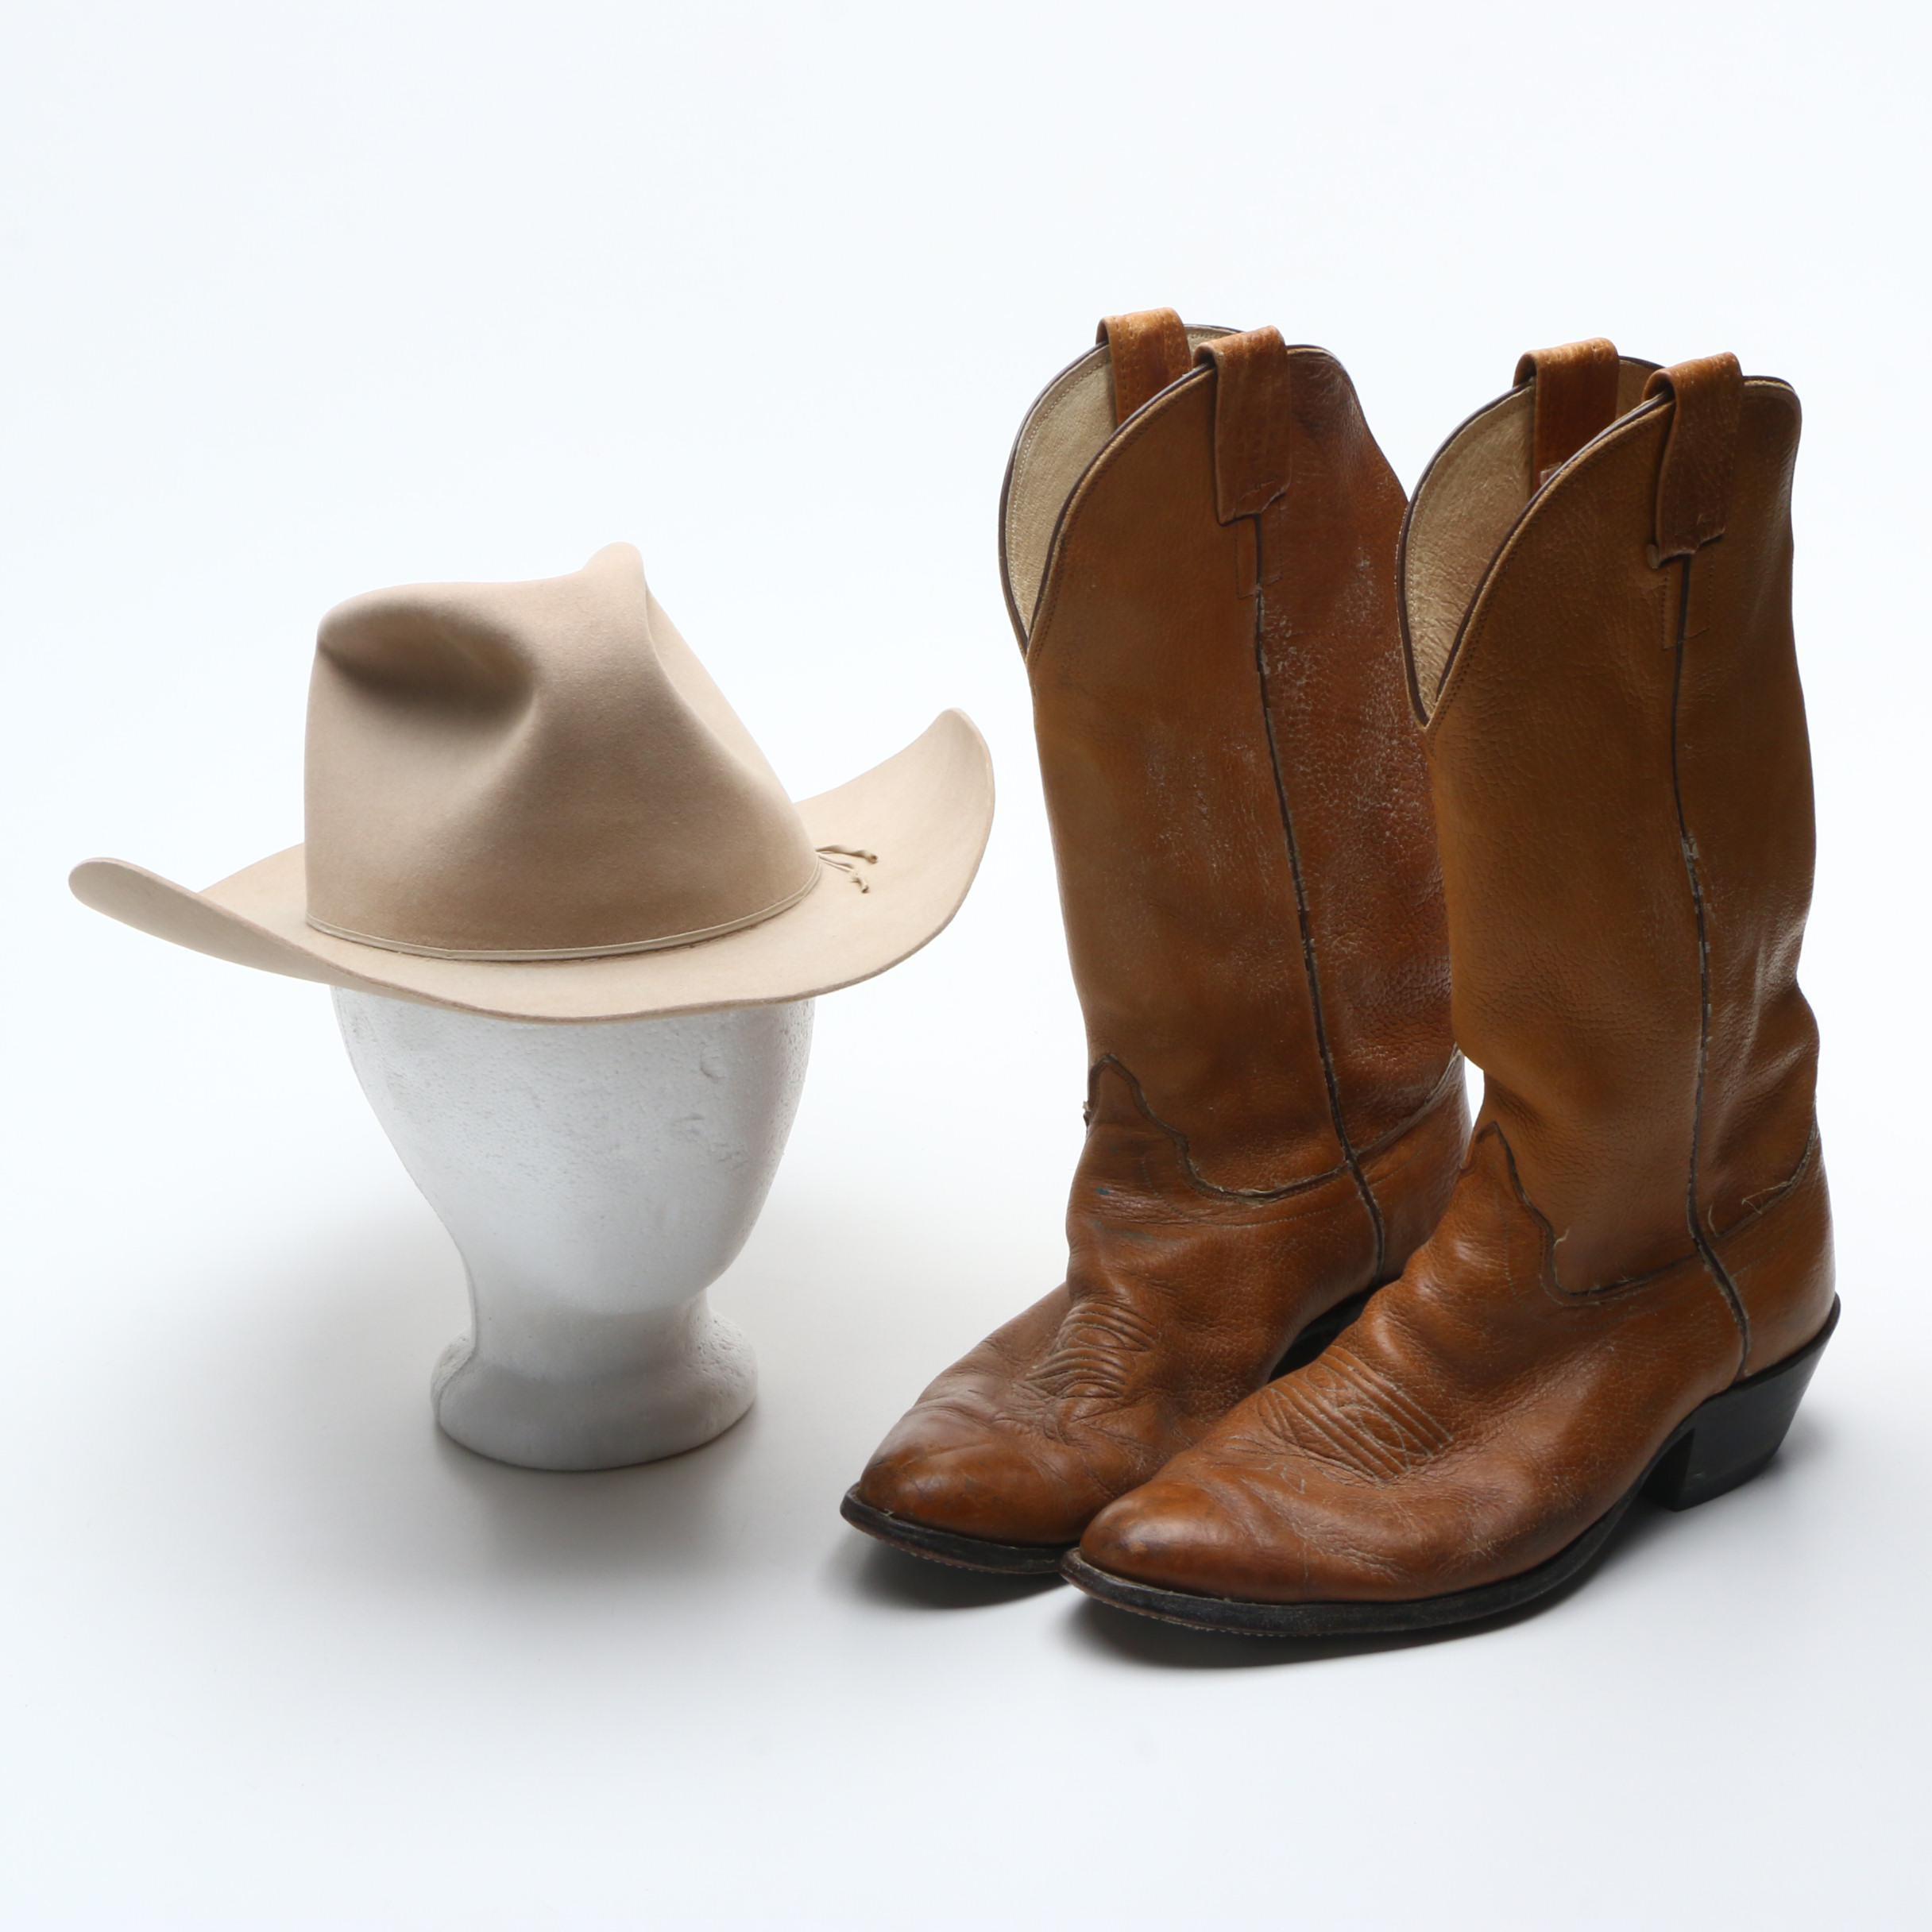 a0ee9abc416 Mens cowboy boots and hat ebth JPG 880x906 Mens cowboy boots and hat